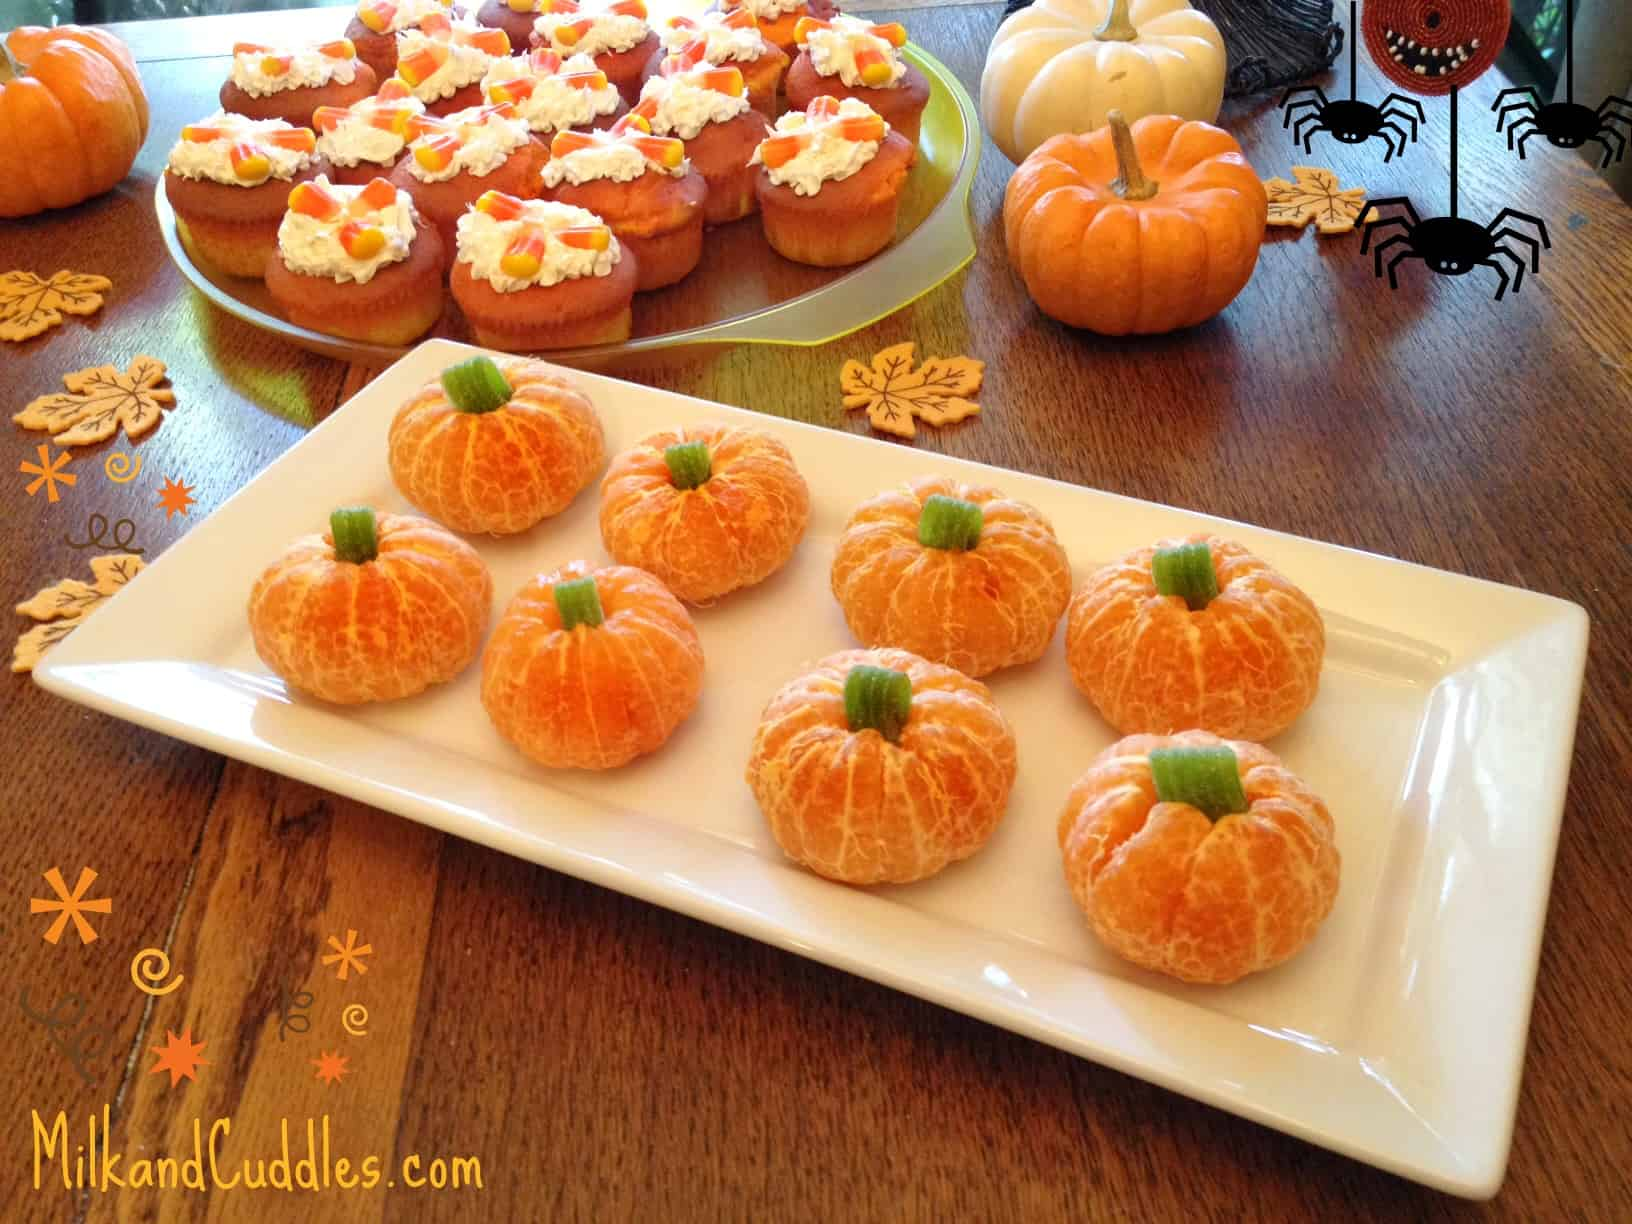 Orange and candy pumpkins